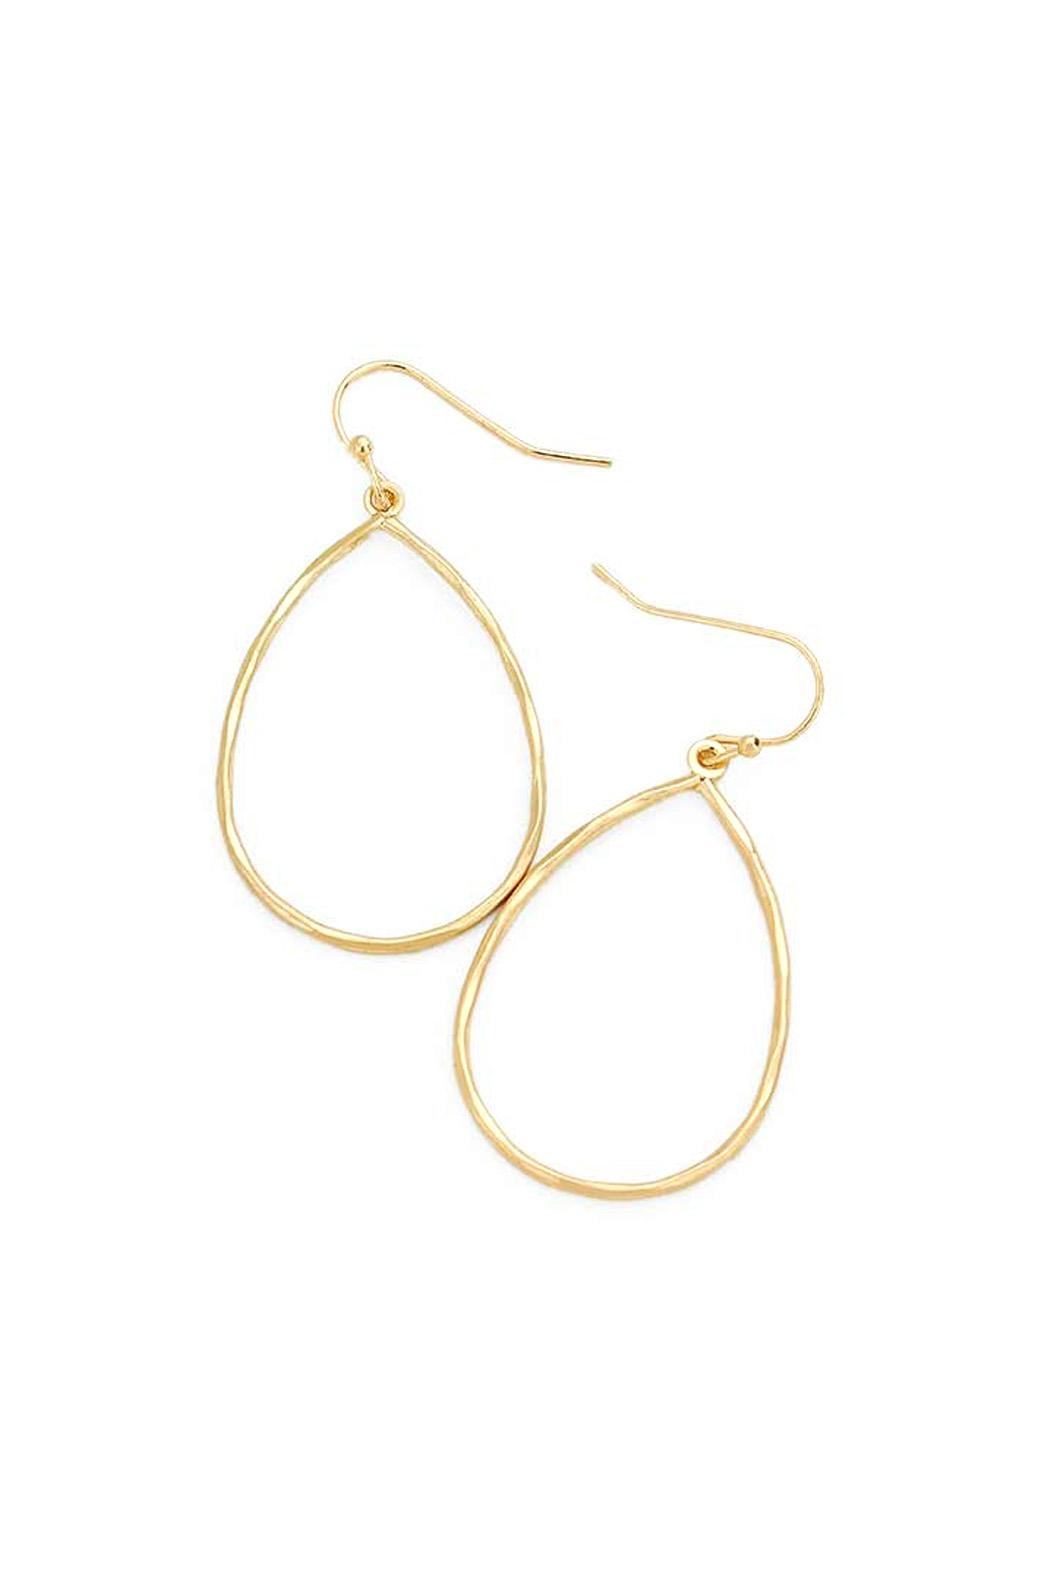 Wild Lilies Jewelry  Teardrop Hoop Earrings - Main Image